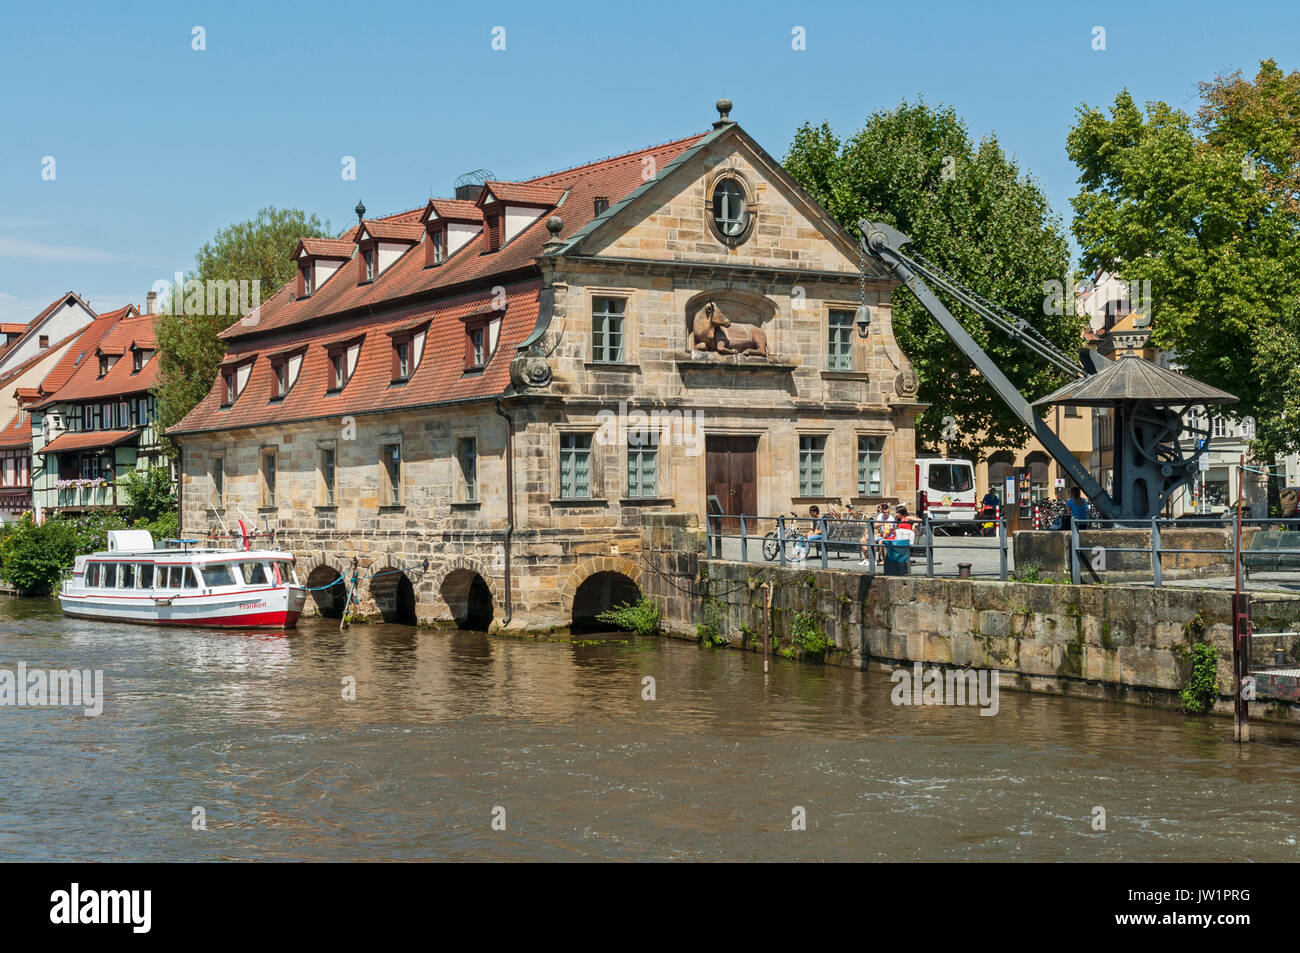 The Old Slaughter House in Bamberg, Franconia, Germany. - Stock Image